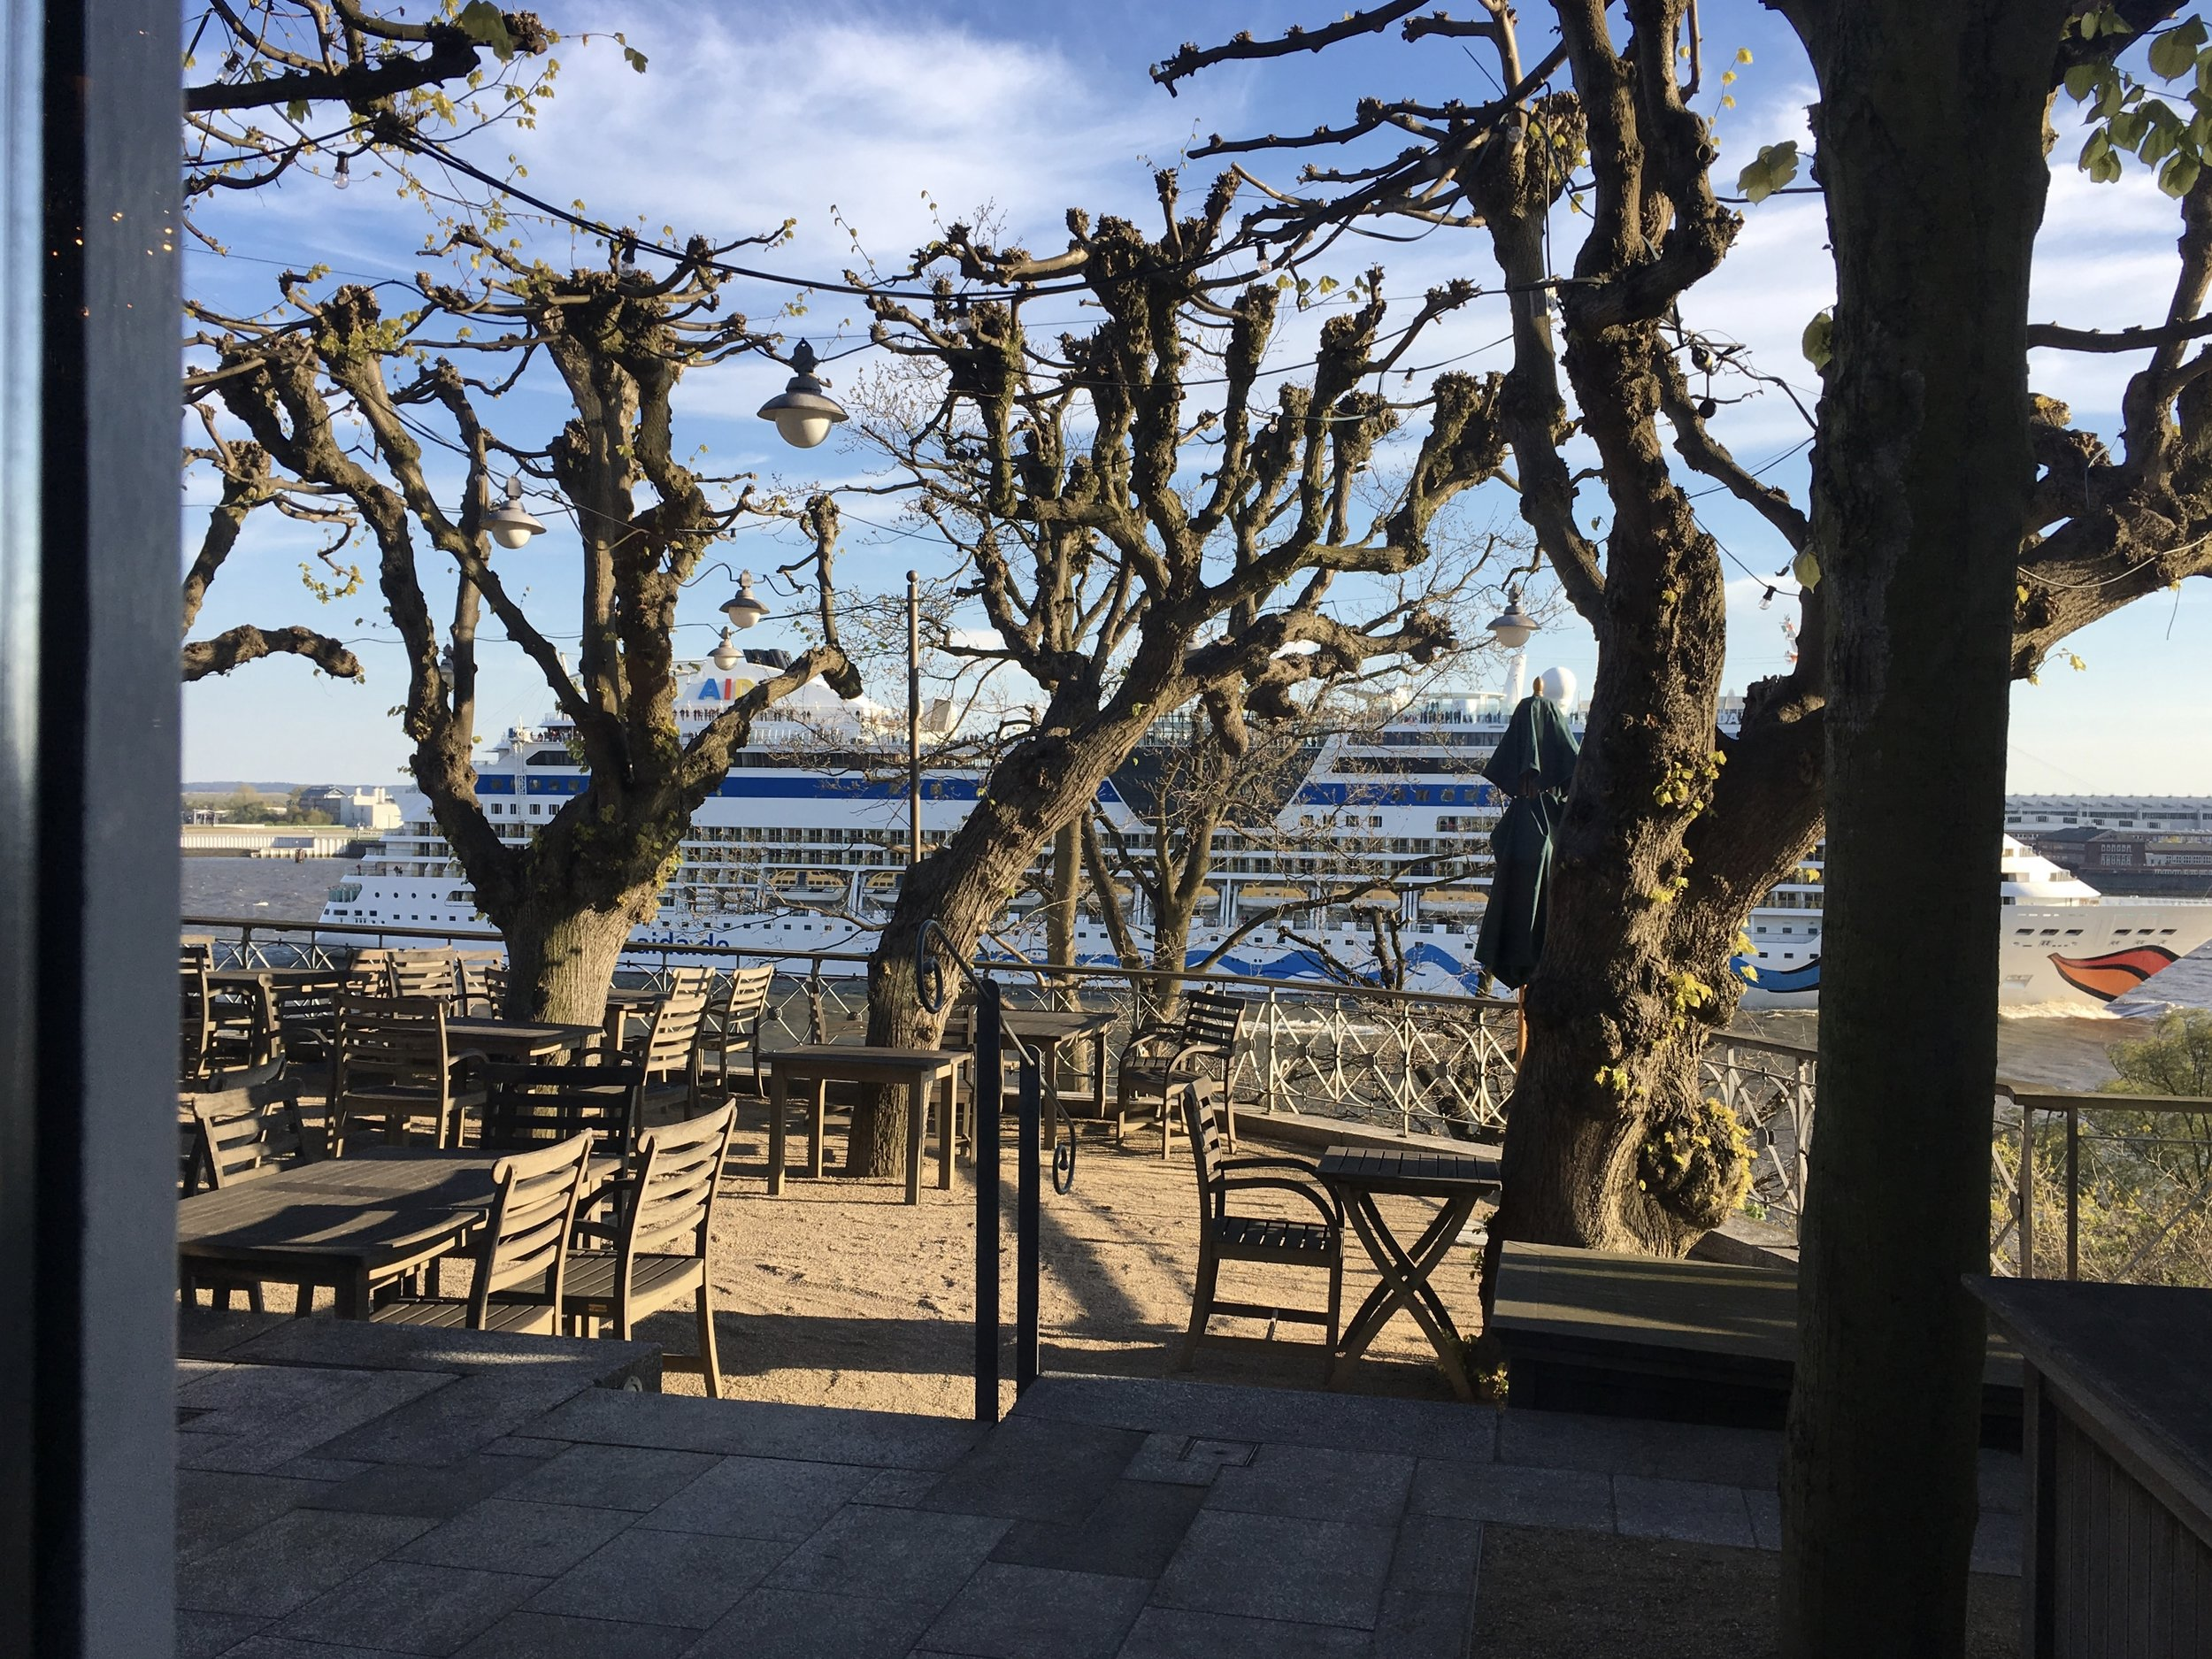 The terrace will be great in summer to get a first row for viewing cruise ships going by